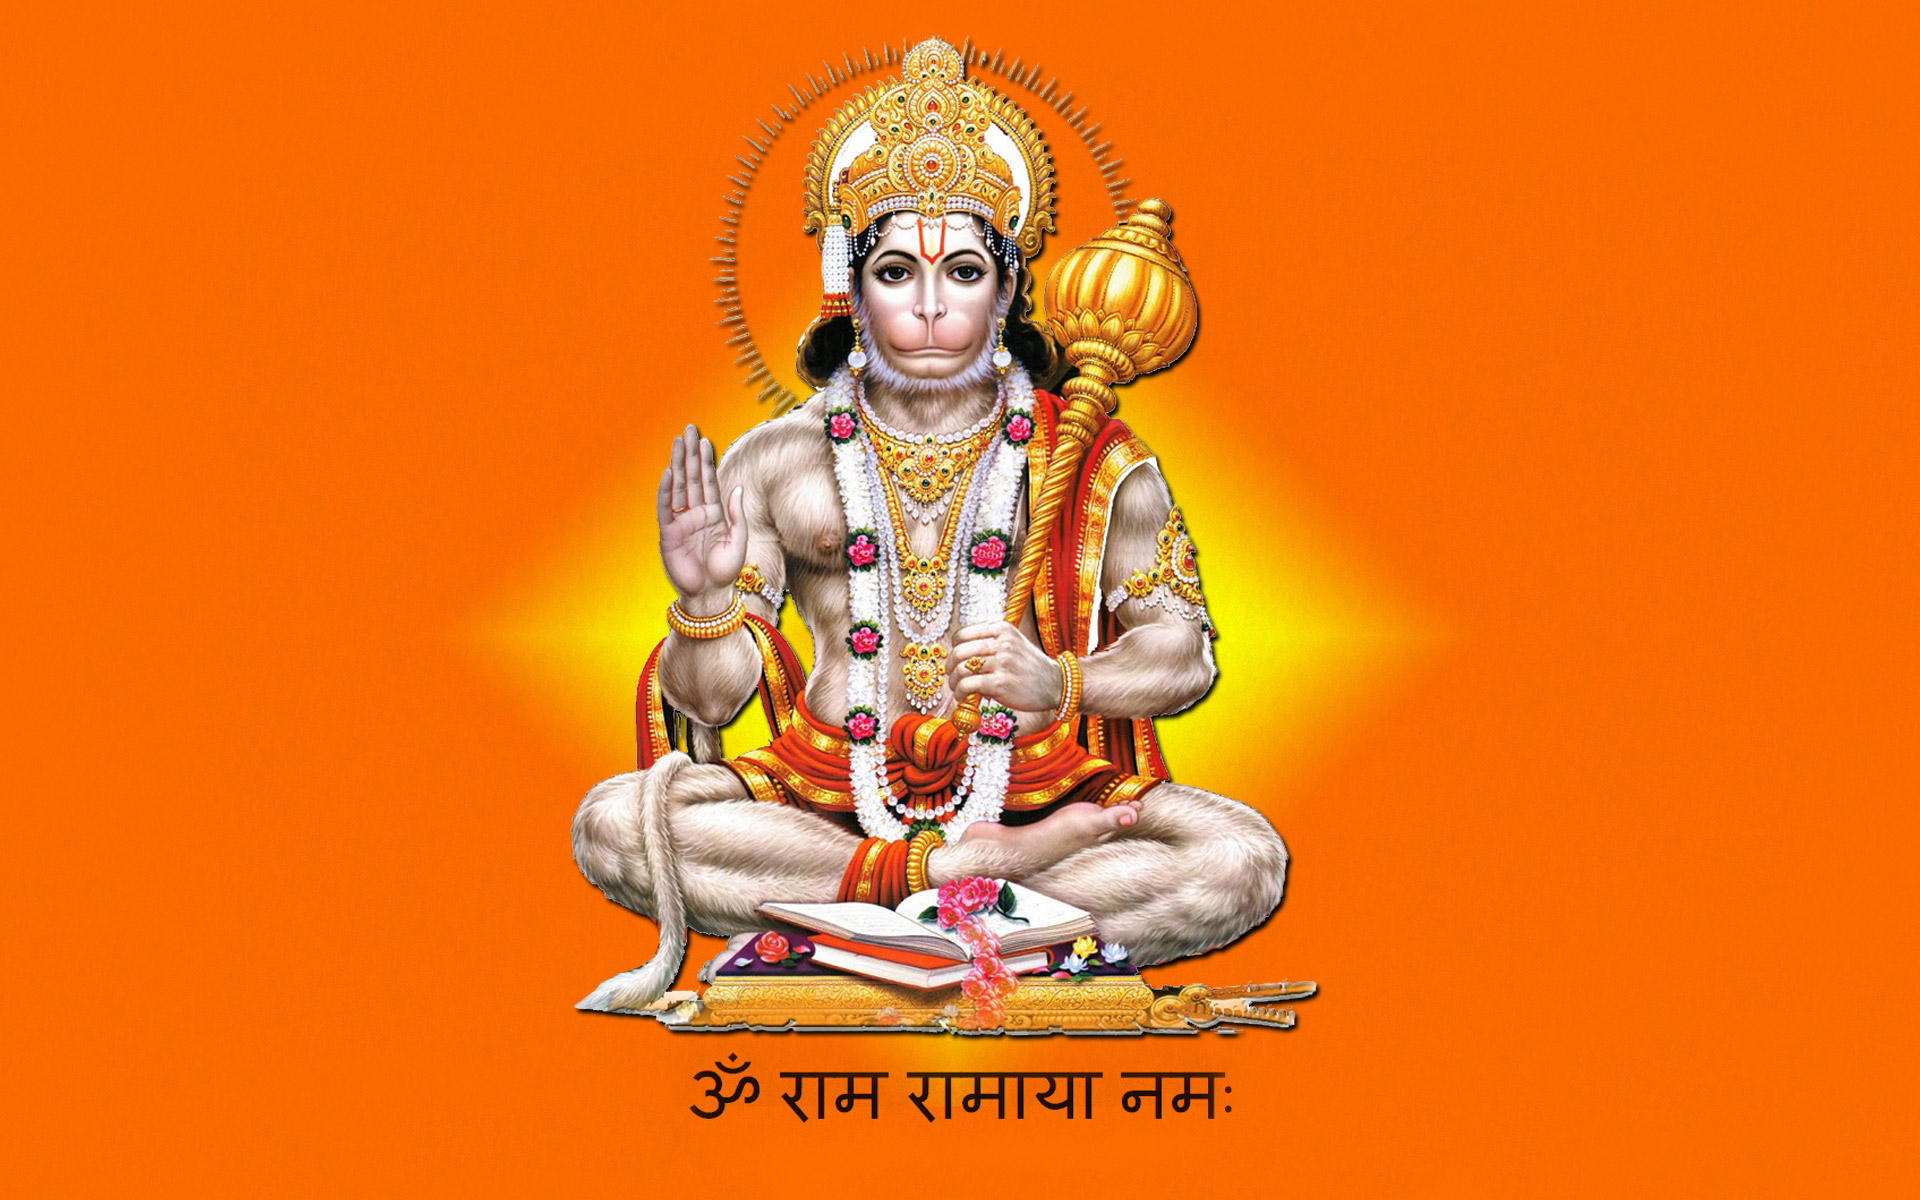 Hanuman Jayanti 2017 Image for Whatsapp